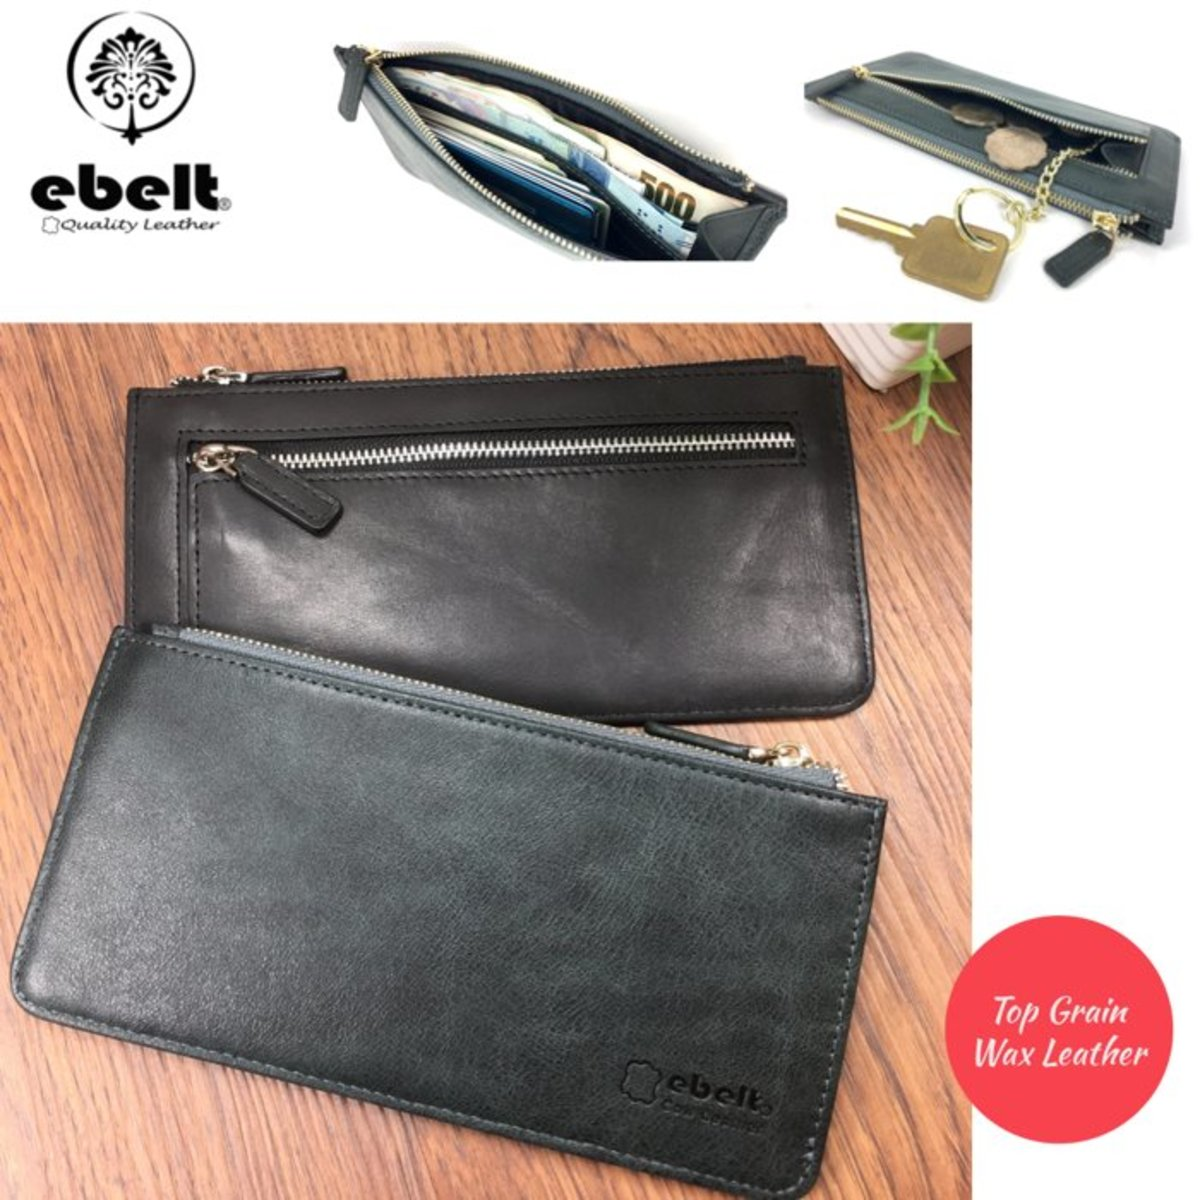 ebelt Full Grain Wax Leather Slim Long Wallet - WM0134